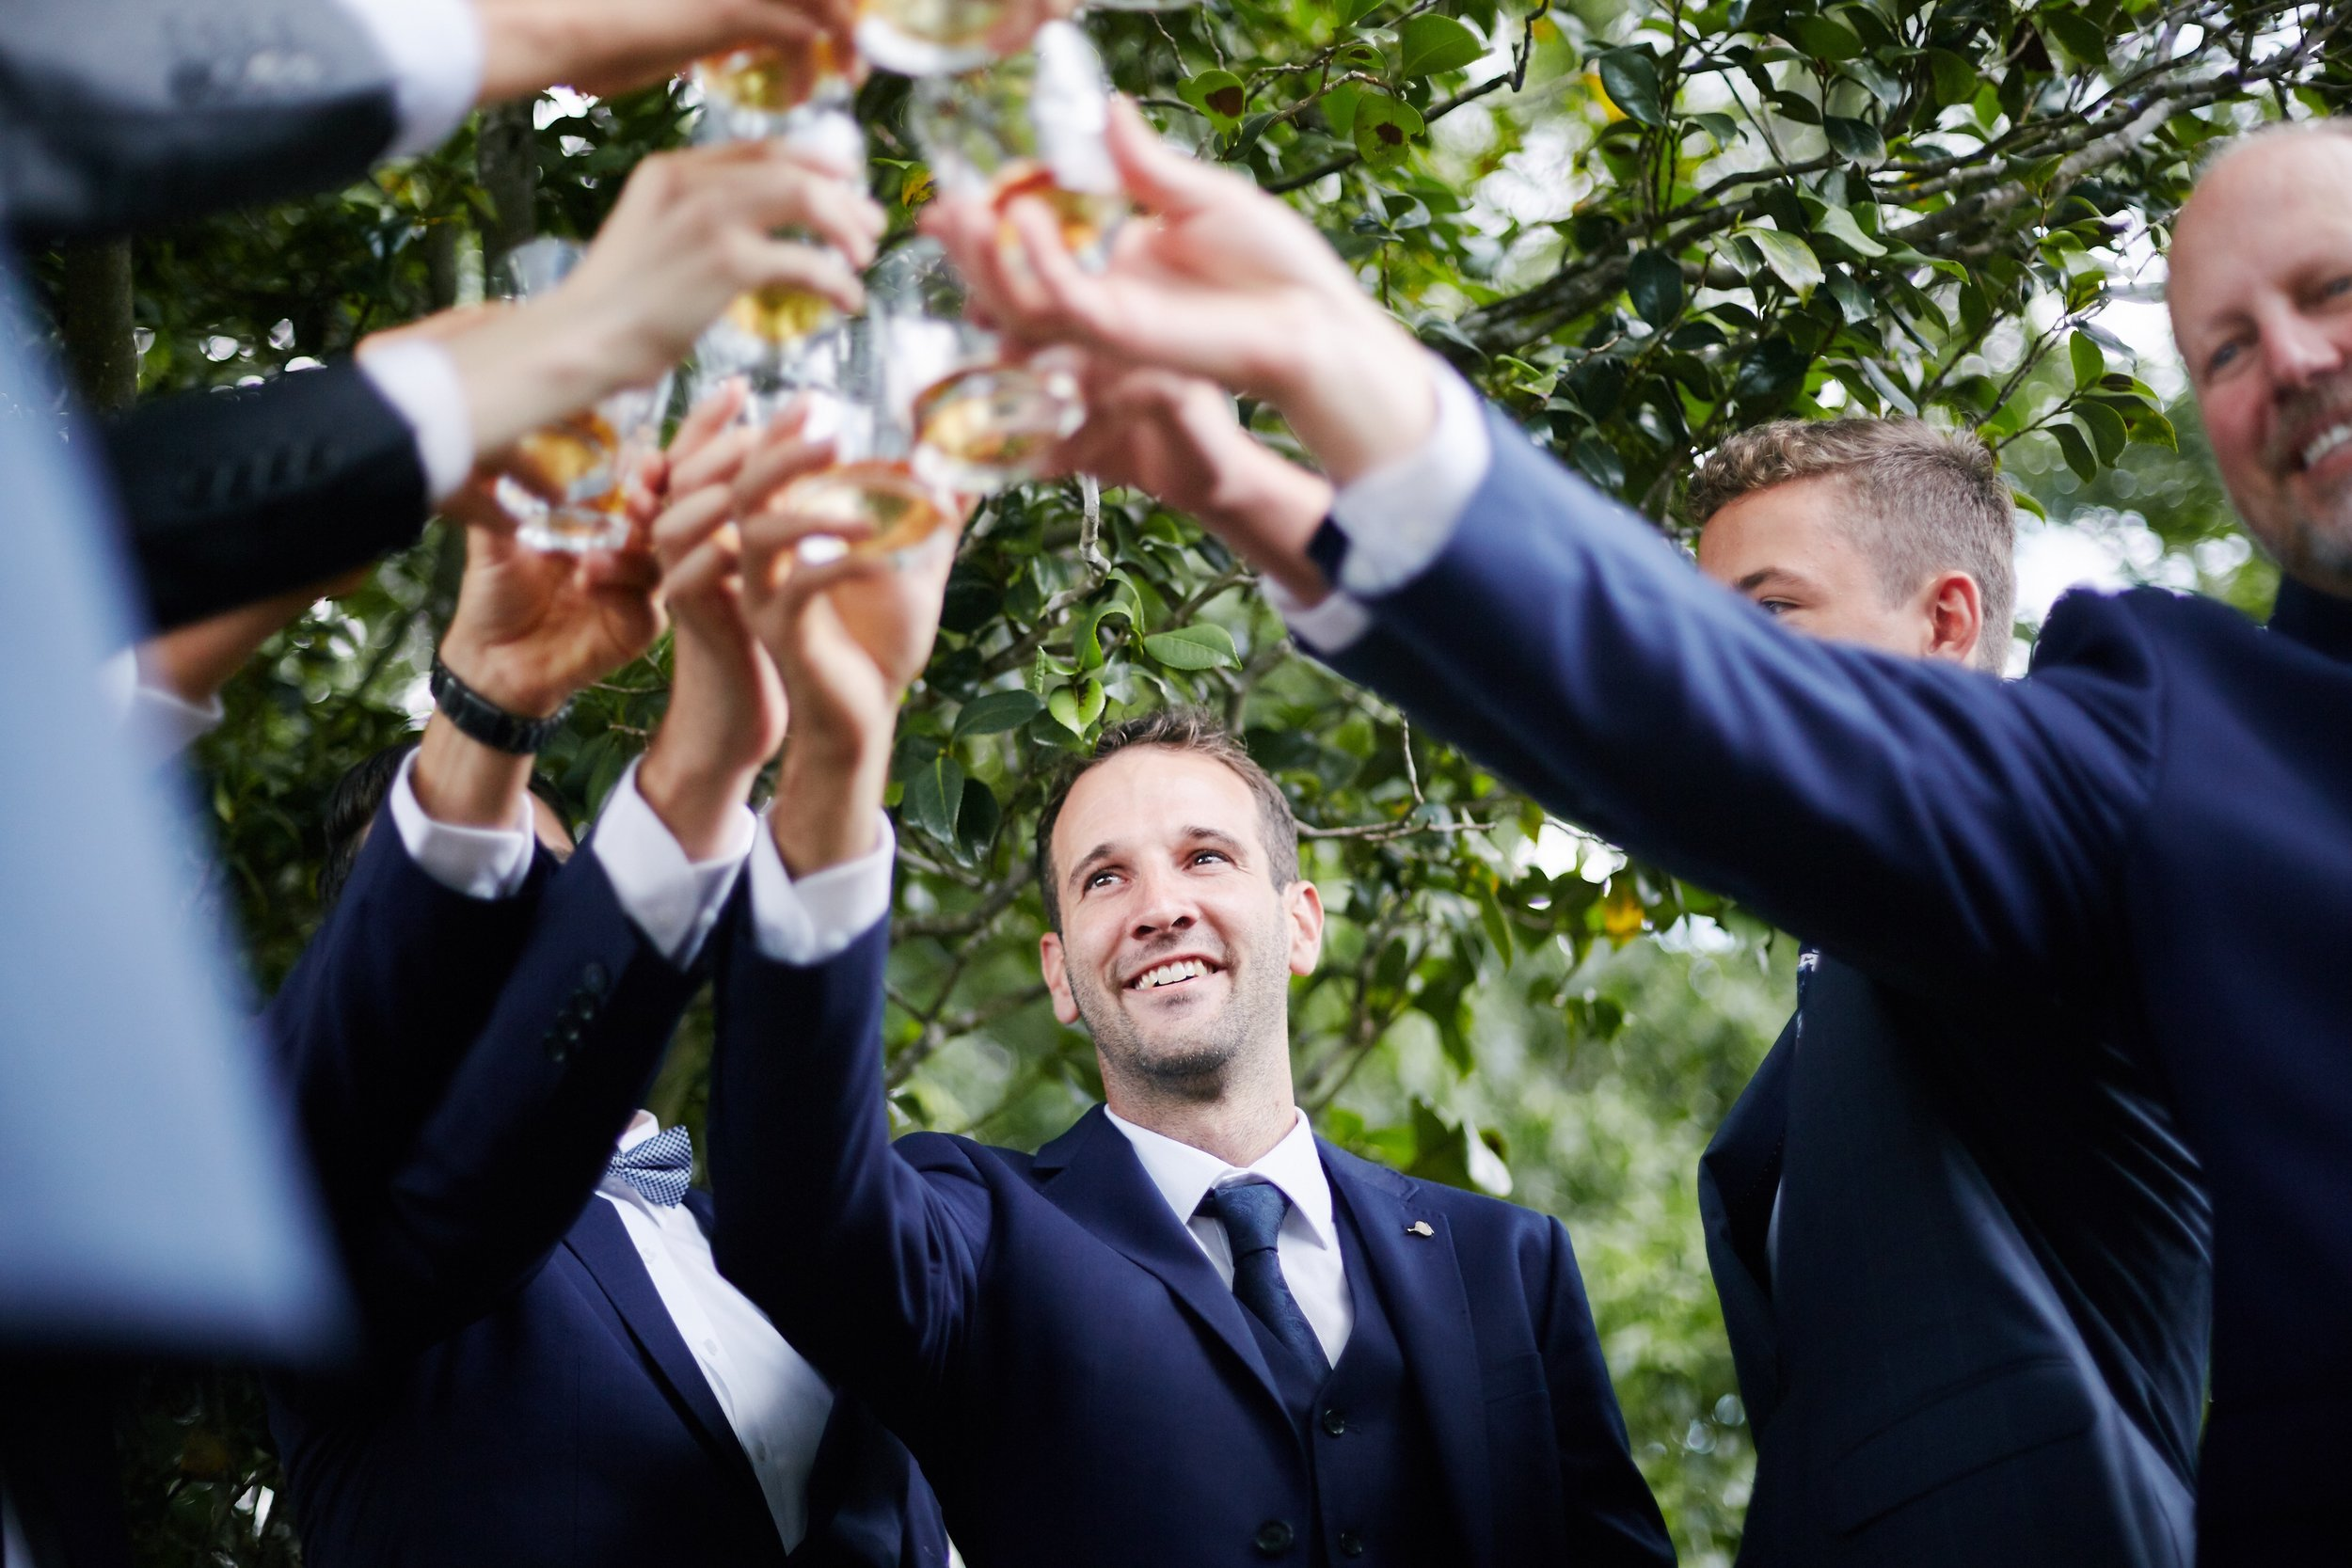 Grooms toasting drinks before the wedding starts